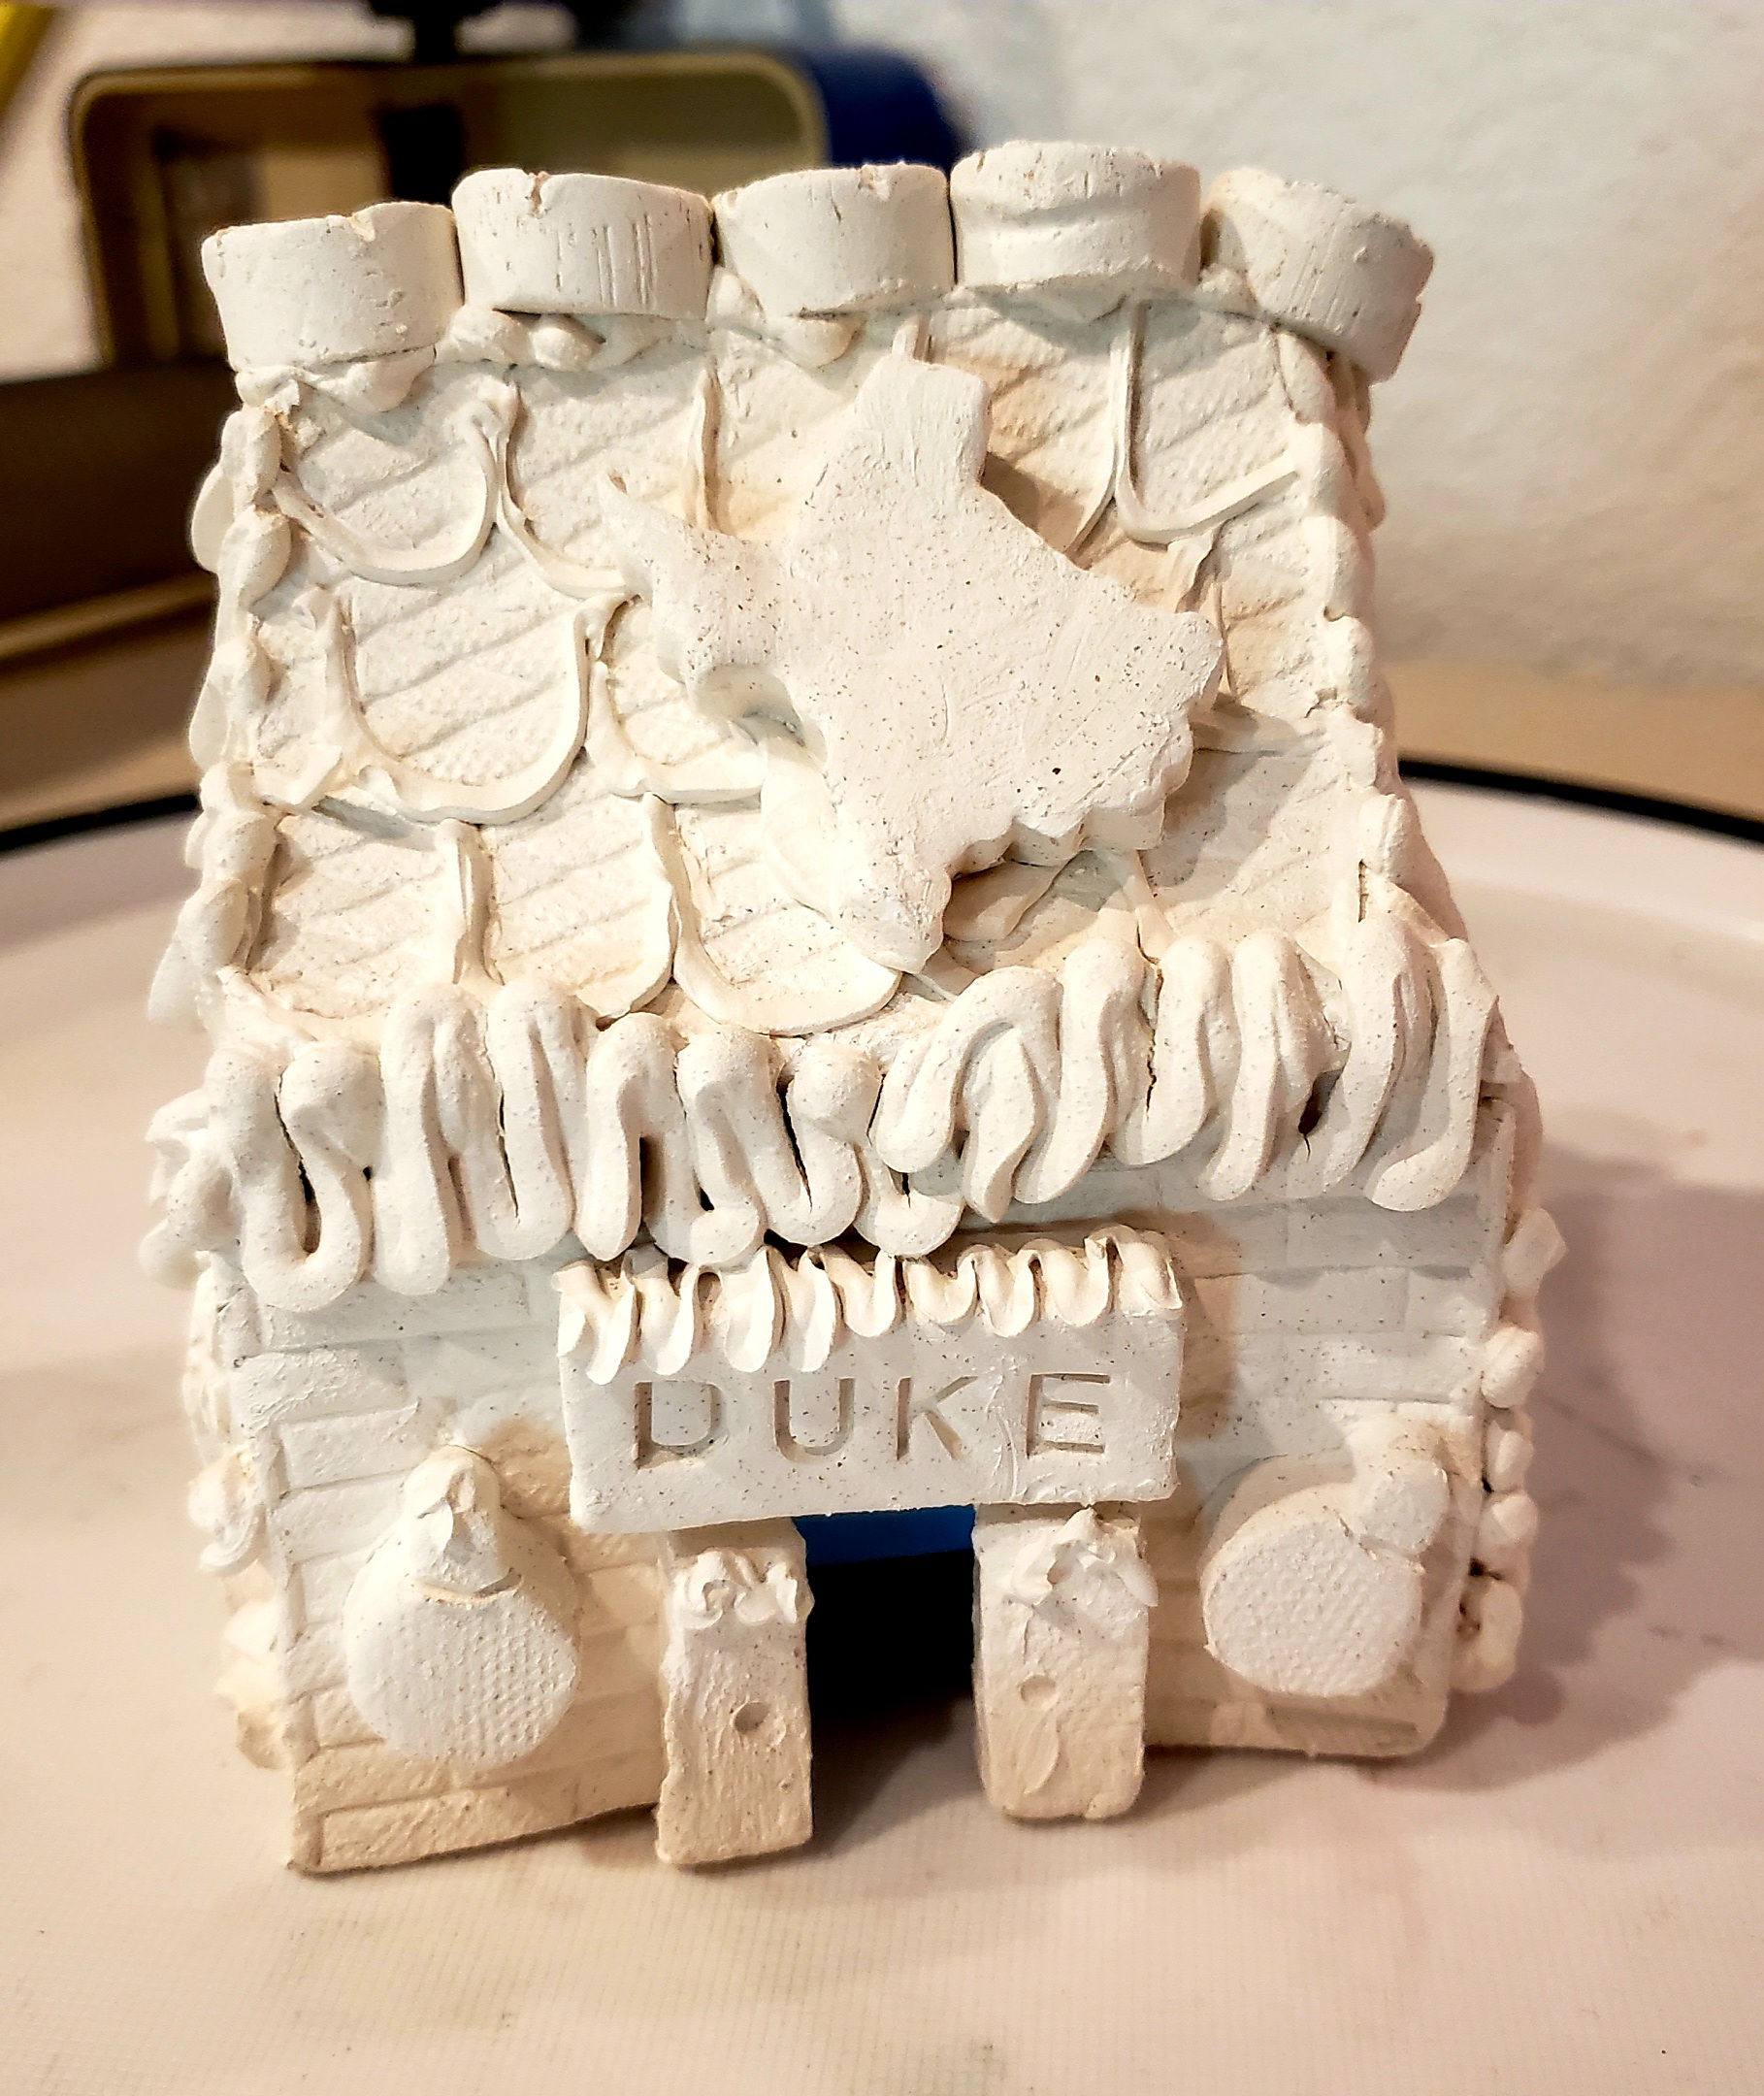 Personalized & Pre-Made, Unpainted Ceramic Gingerbread House